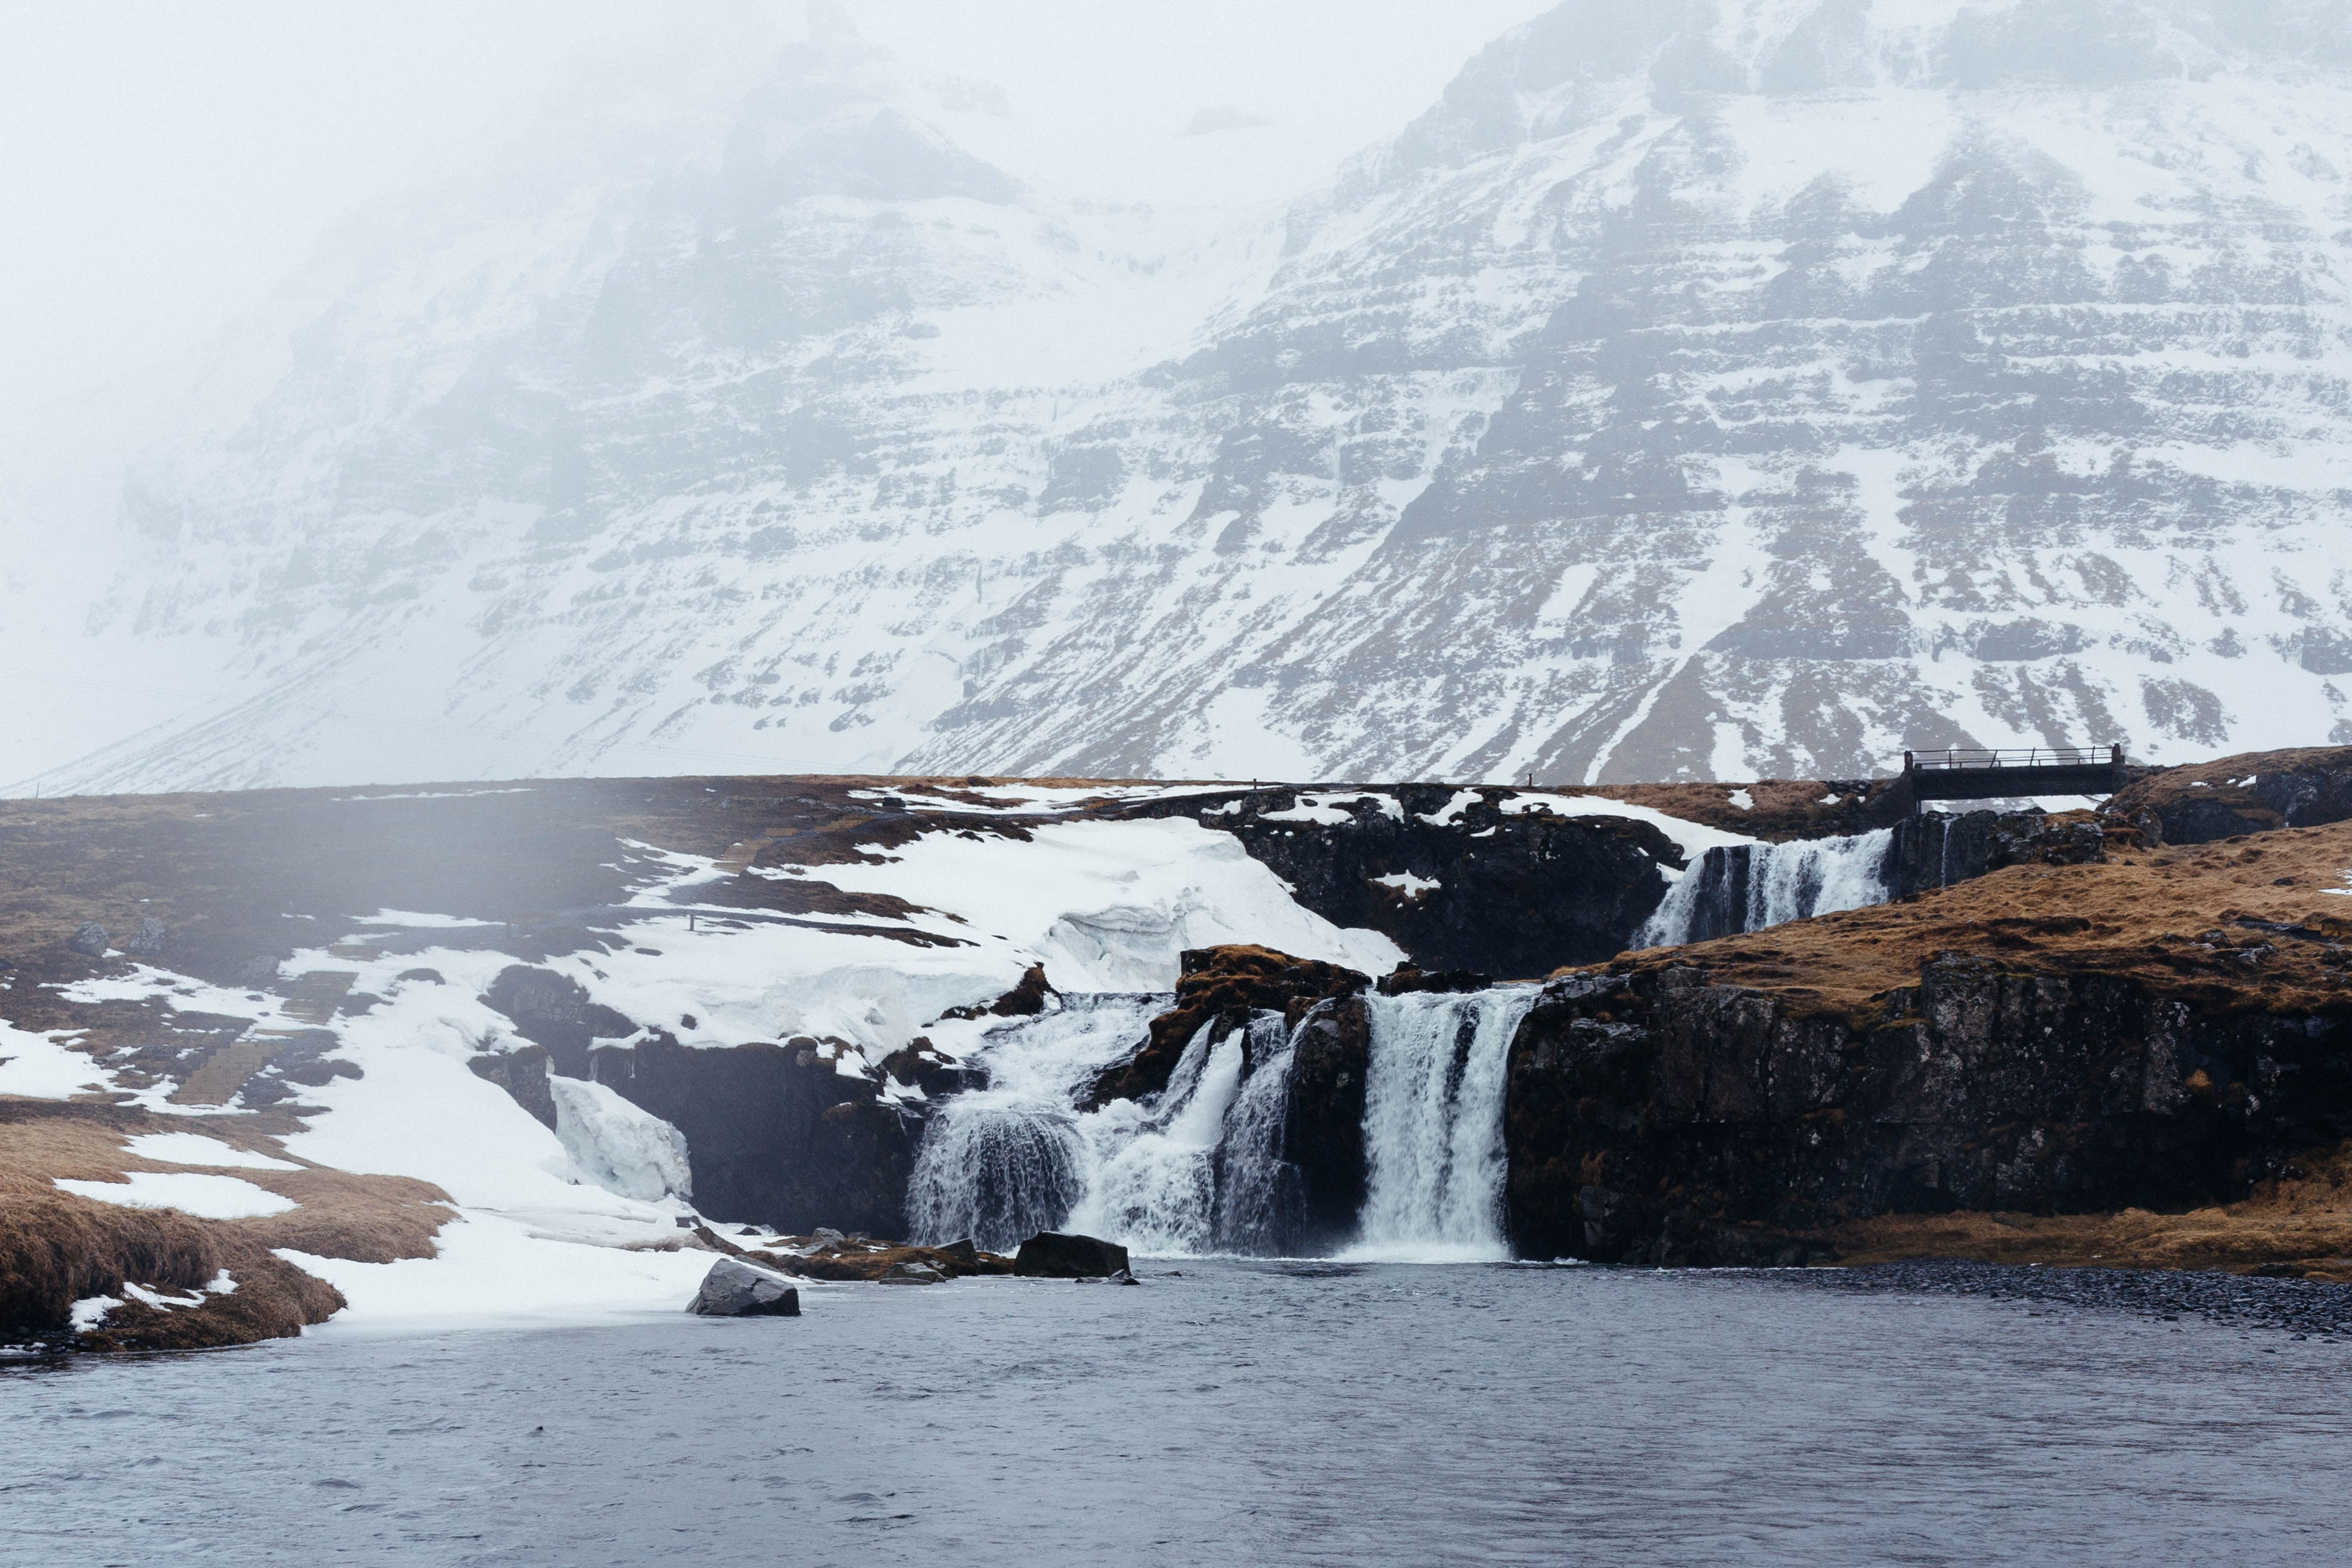 Small waterfalls feed into a lake at the foot of a snowy mountain